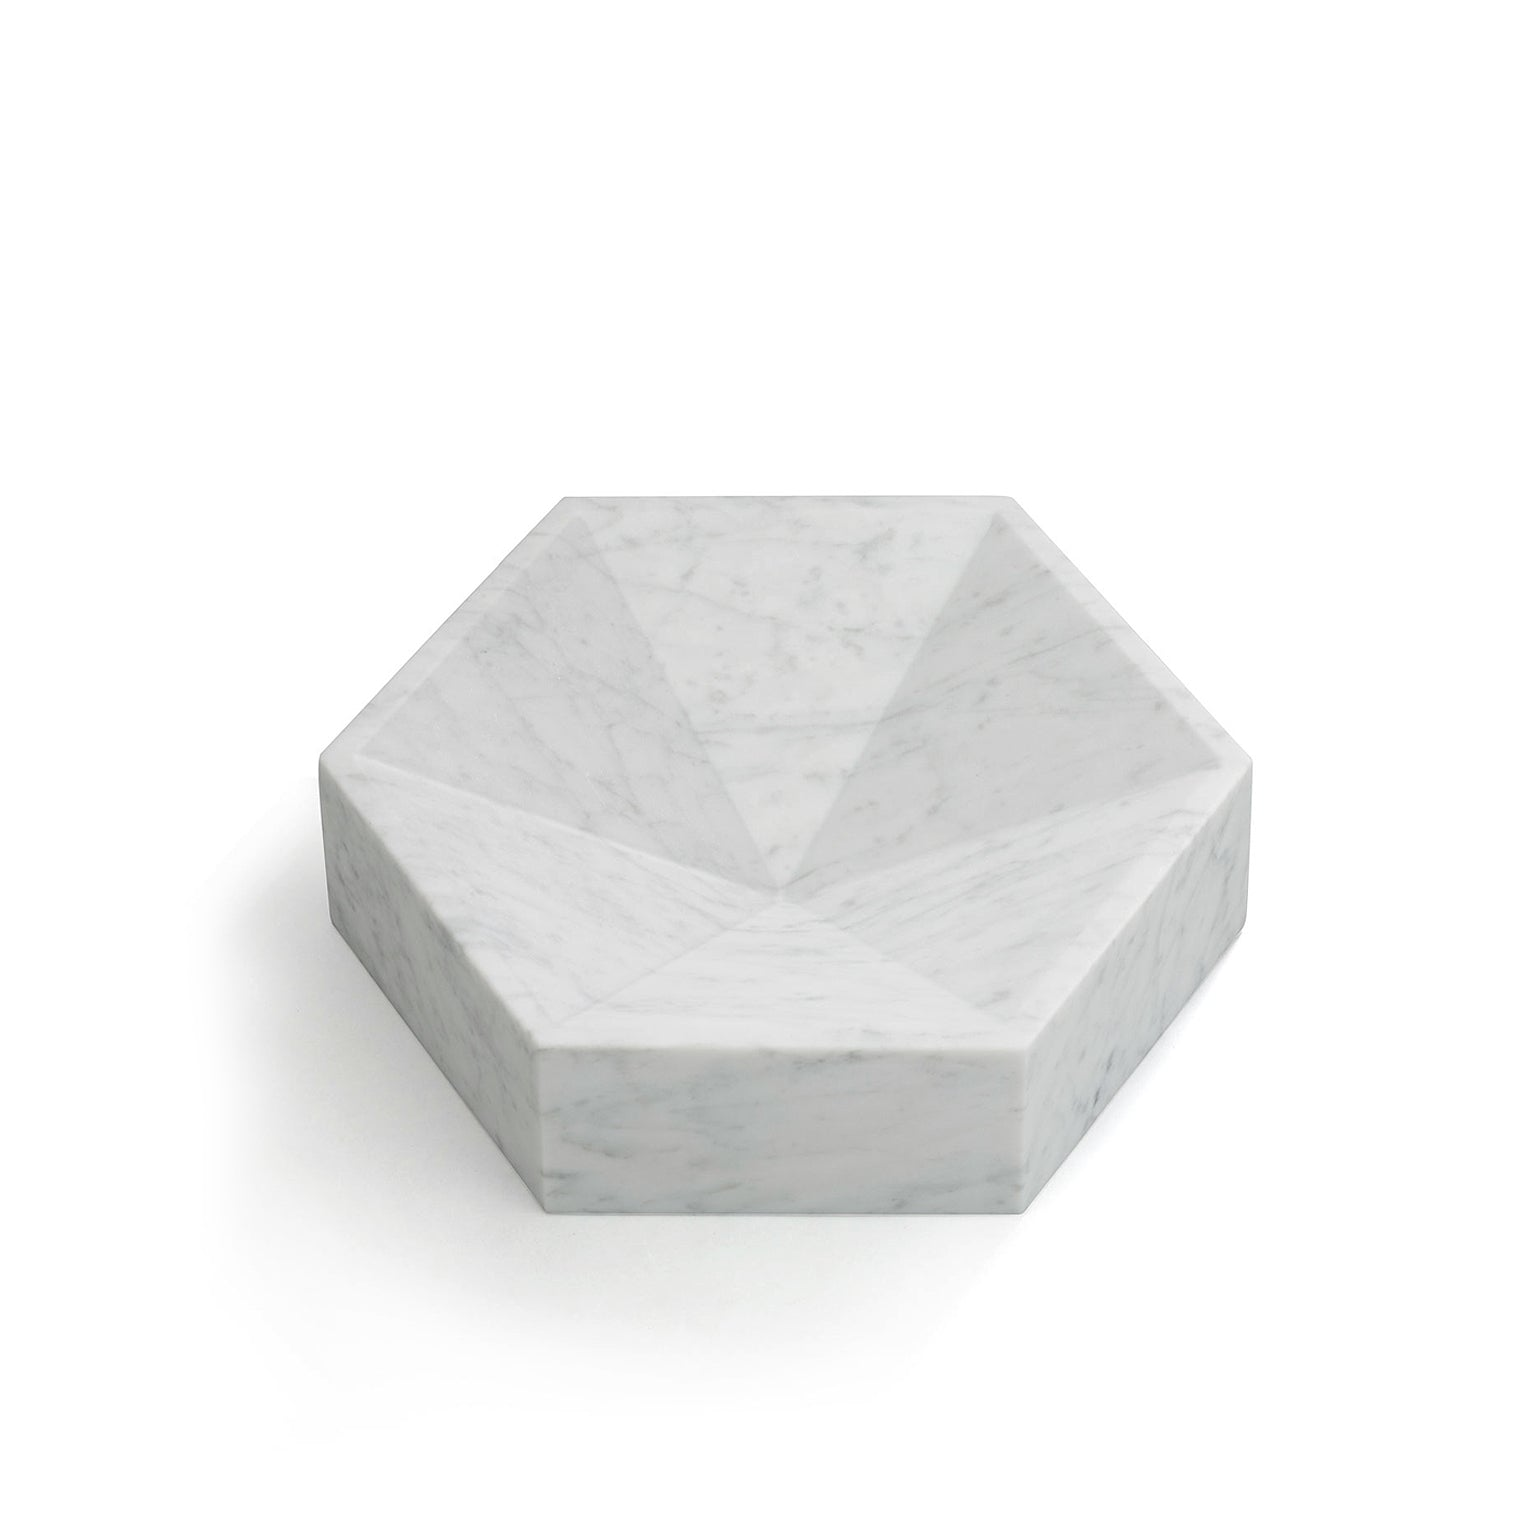 Hexagonal Constellation Bowl Small & Low </br> Carrara